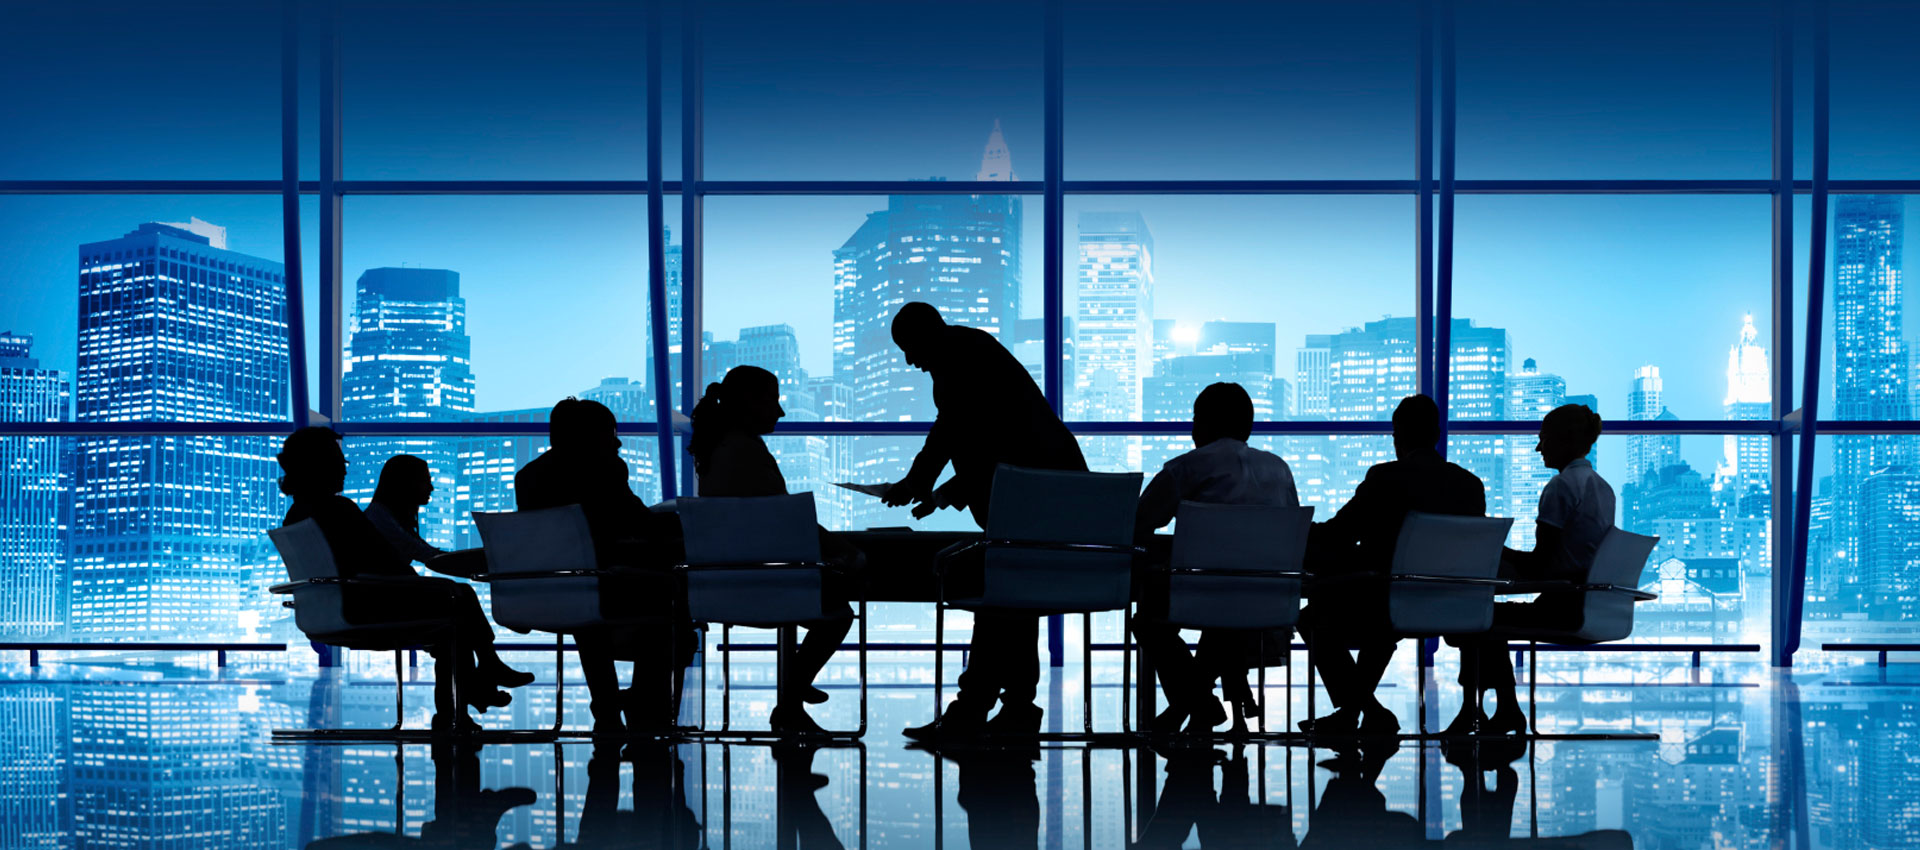 board of directors introduction A board of directors is a recognized group of people who jointly oversee the activities of an organization, which can be either a for-profit business, nonprofit organization, or a government agency.